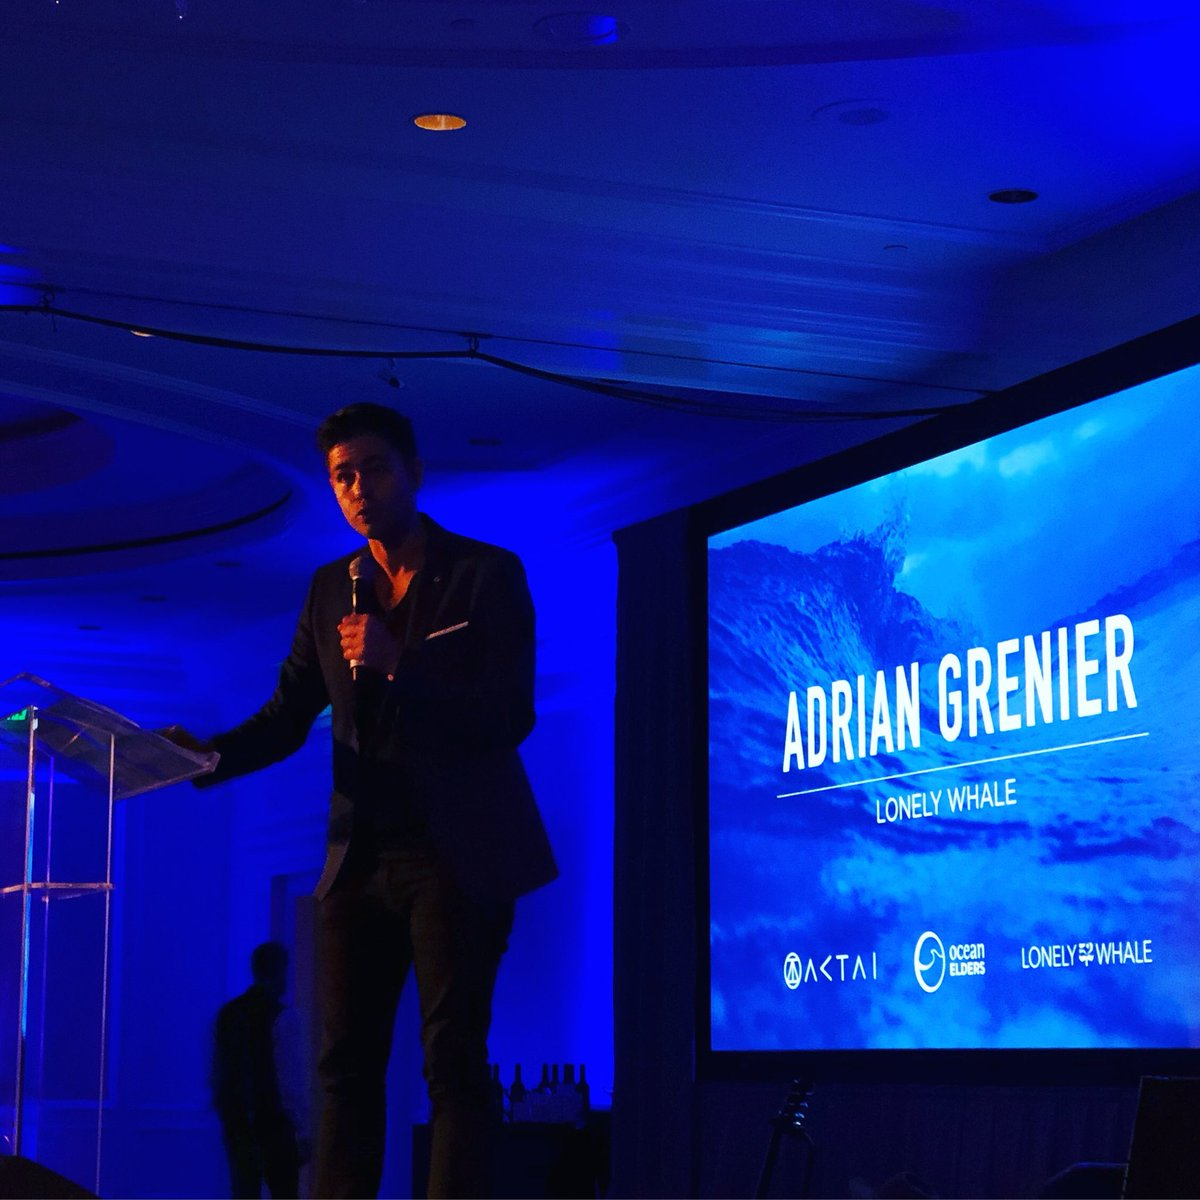 RT @Jason: Nicely done @adriangrenier & @lonelywhale team!  ???? ❤️ https://t.co/8YmNEOvrpp